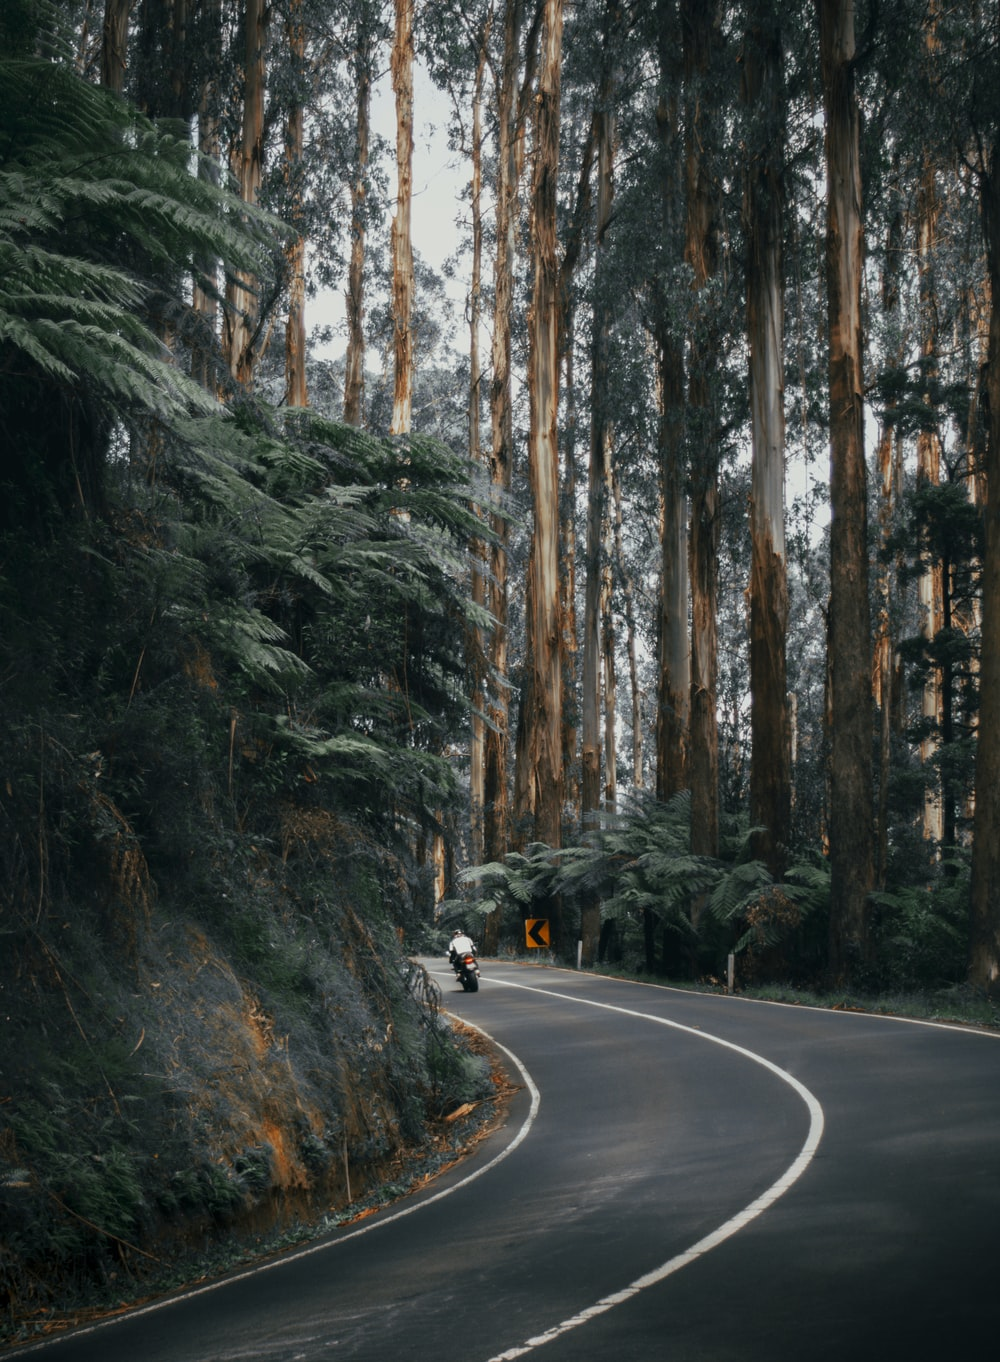 black car on road between trees during daytime